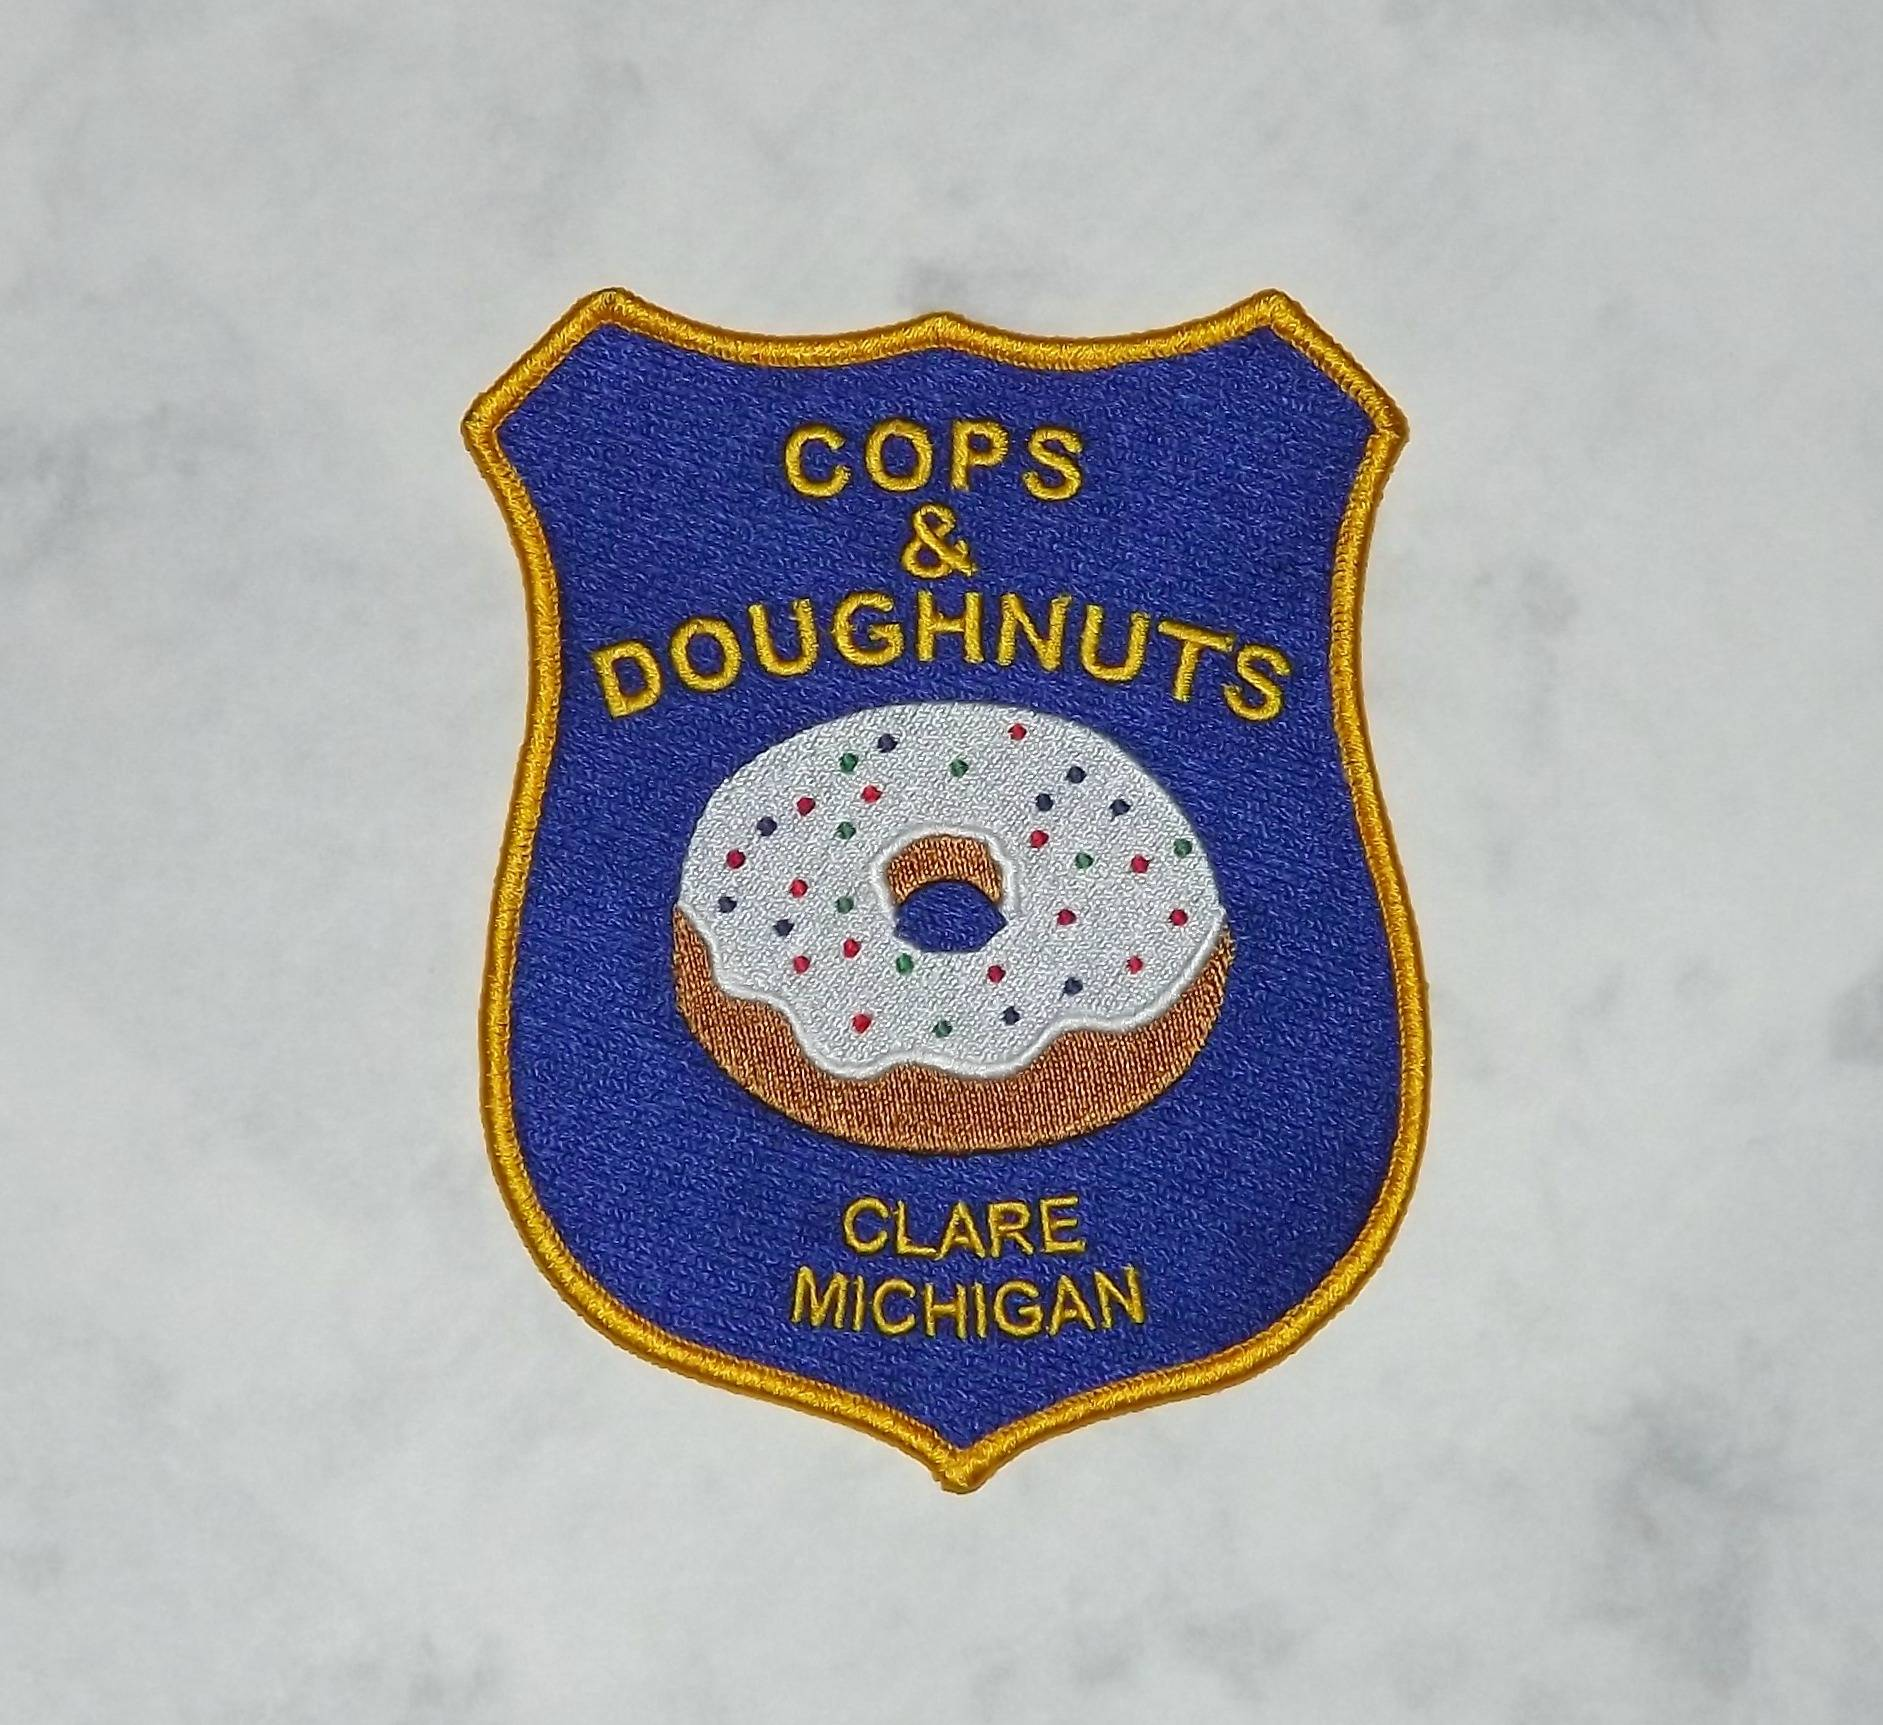 Cops and Doughnuts Bakery, Clare Michigan